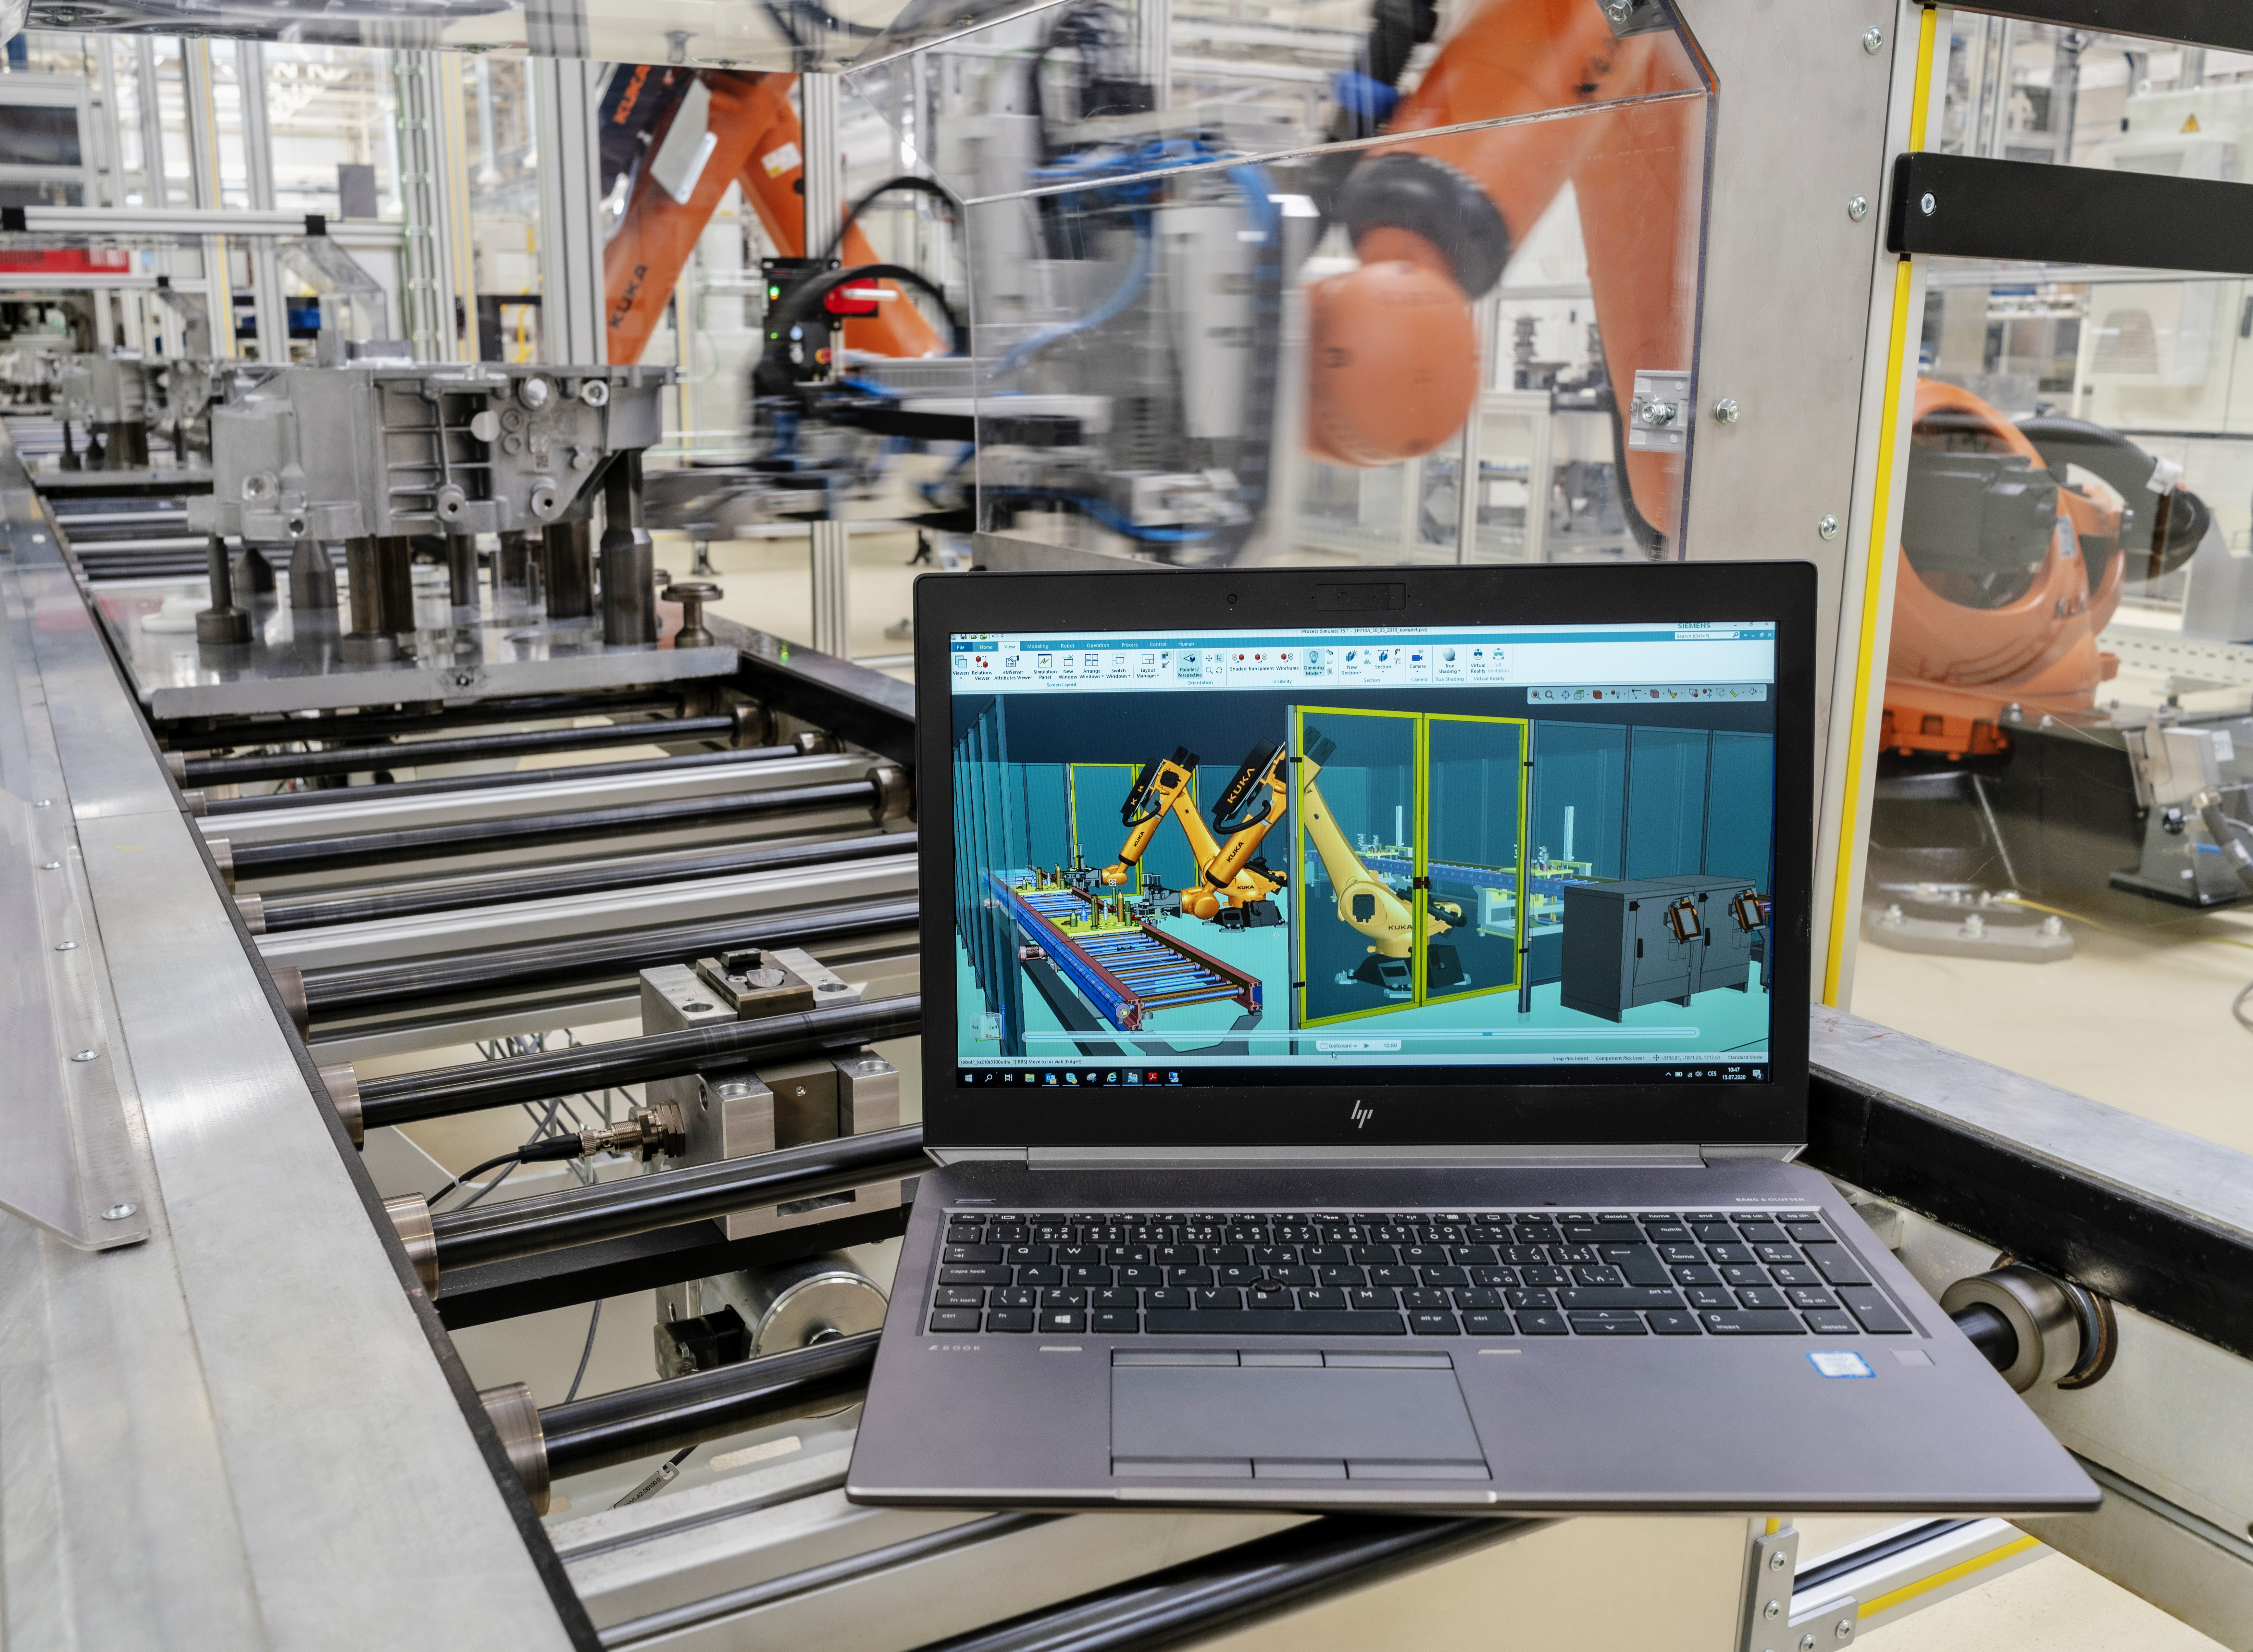 Industry 4.0: SKODA AUTO Vrchlabí plant has made use of 'Digital twin' - Image 2